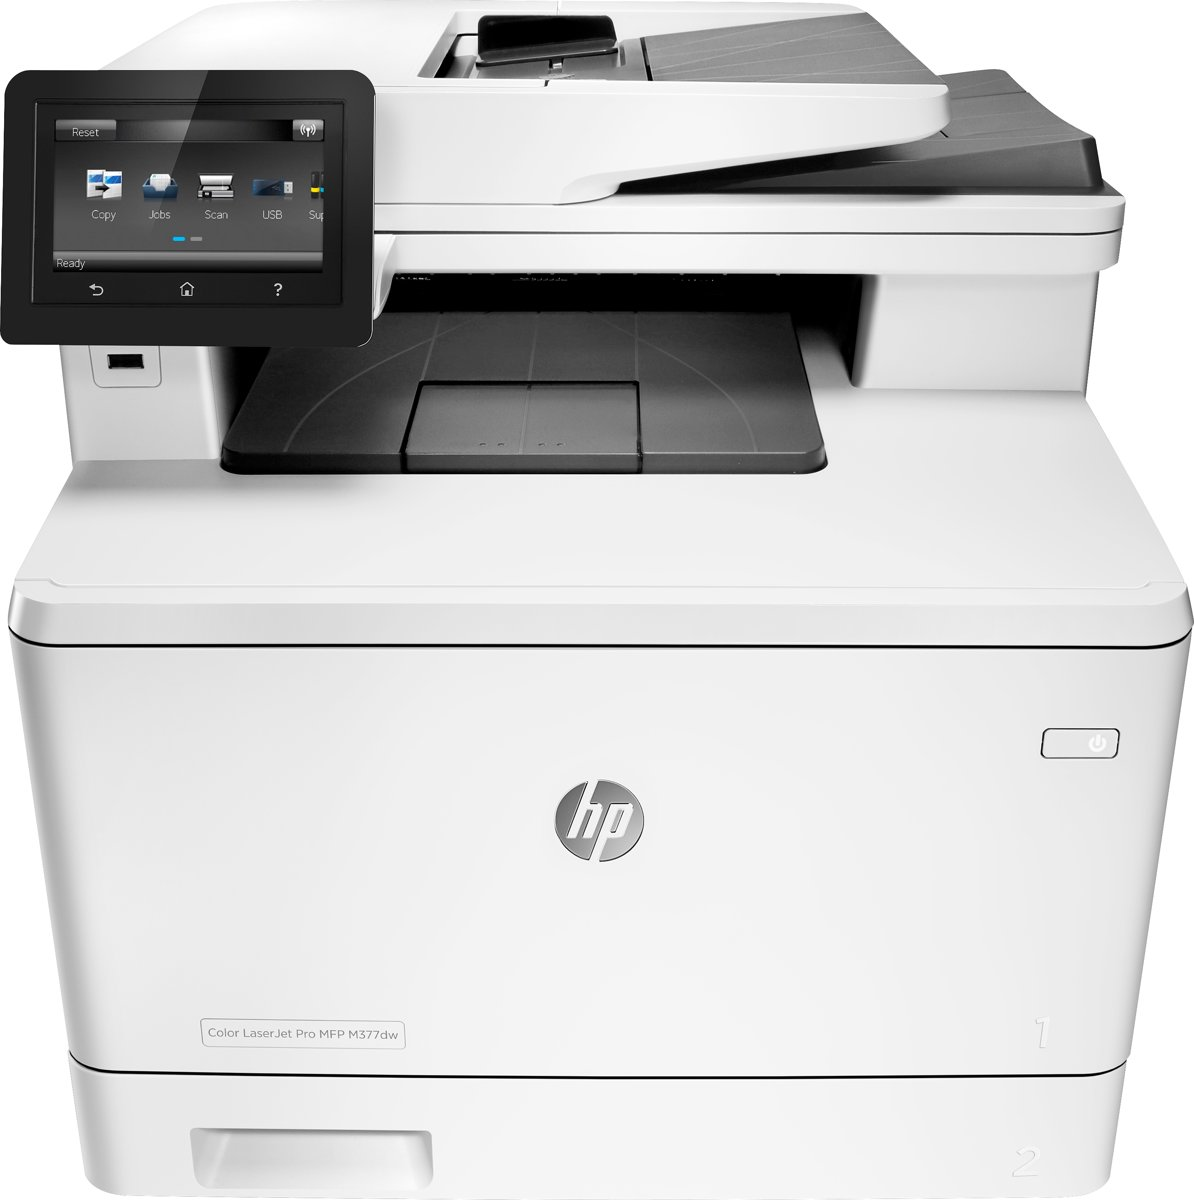 LaserJet Pro MFP M377dw - All-in-One